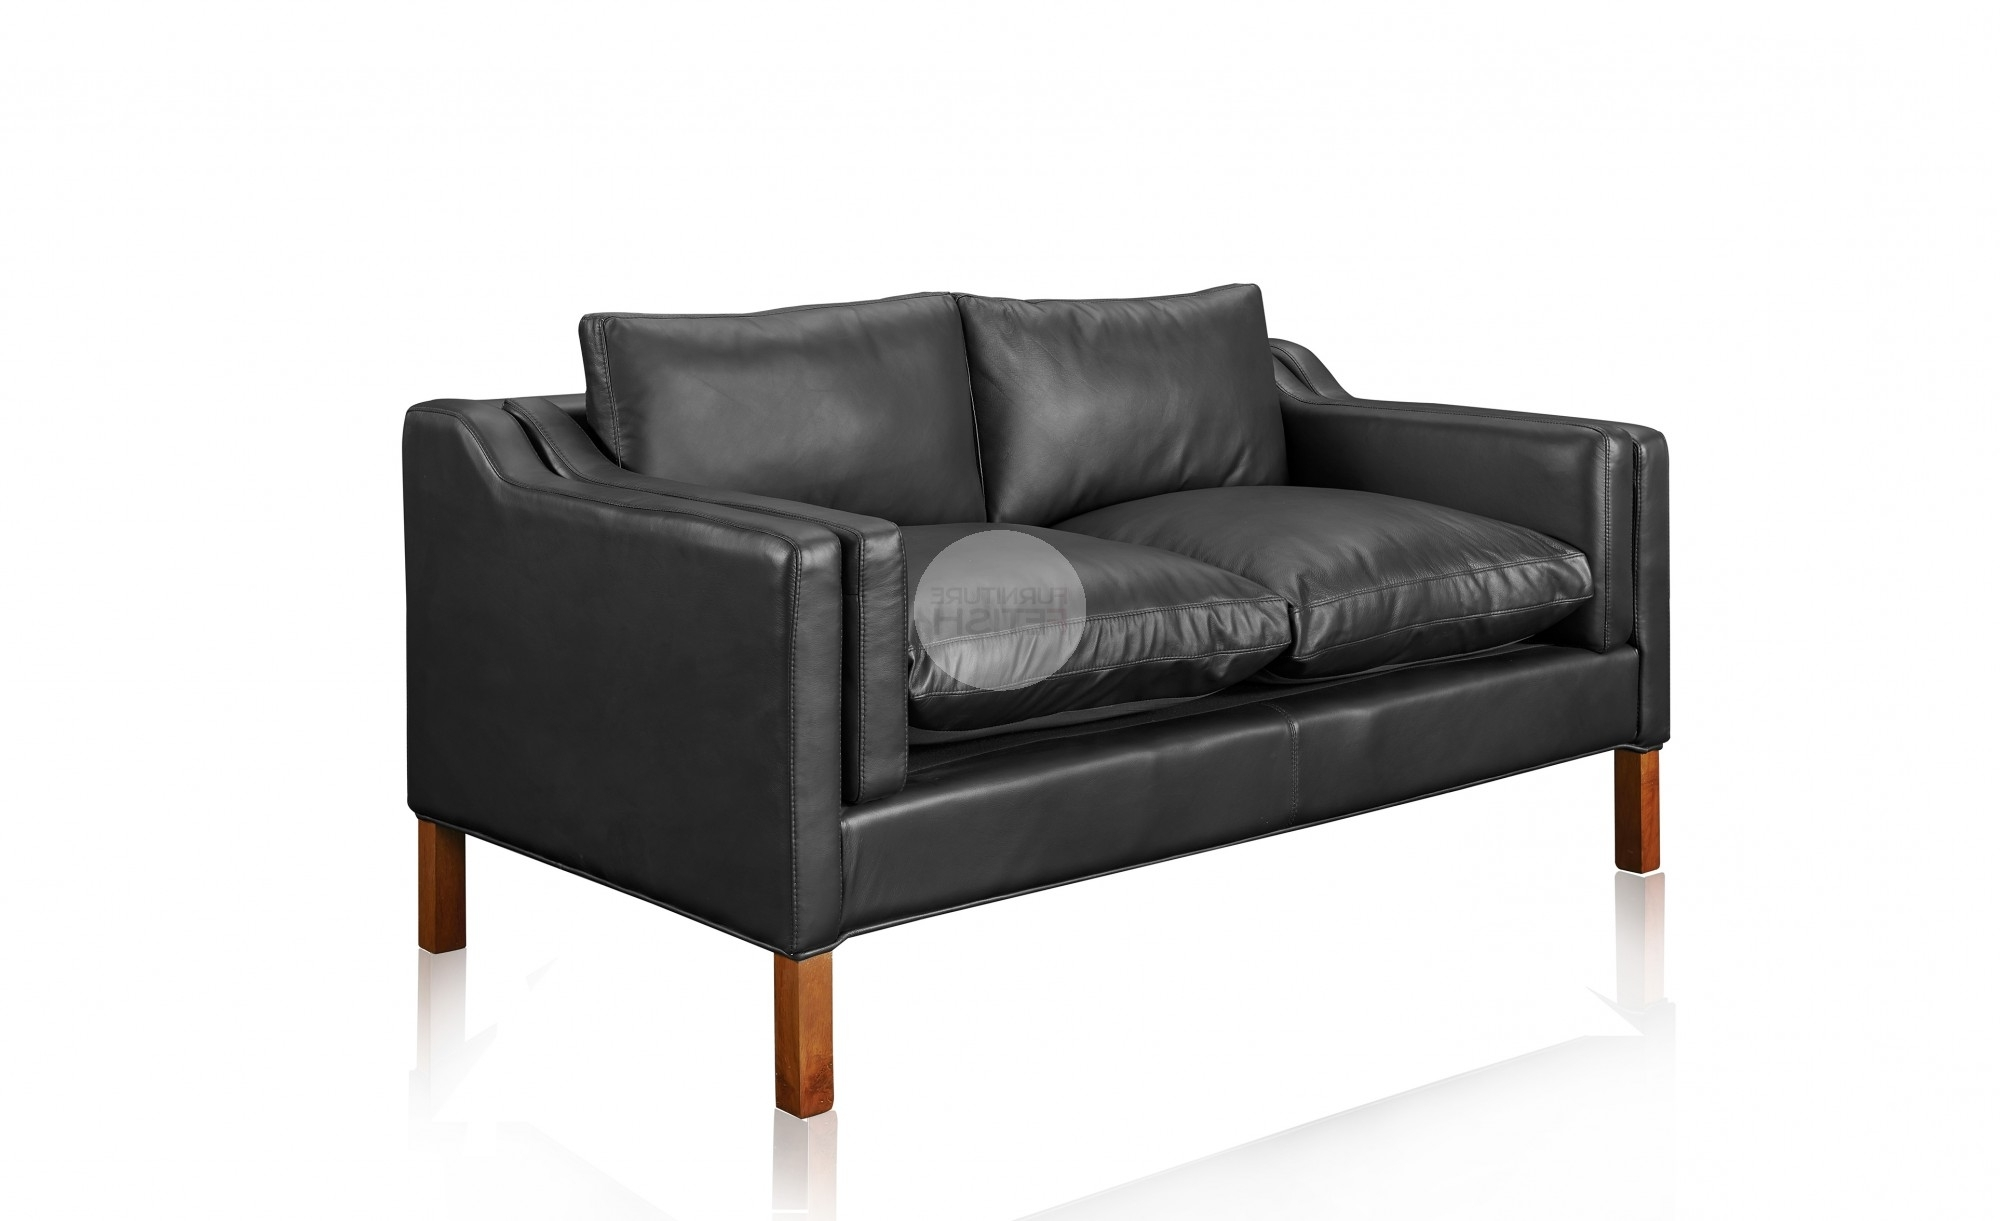 Black 2 Seater Sofas Regarding Most Current Replica Borge Mogensen 2 Seater Sofa – Black Aniline Leather (Gallery 17 of 20)